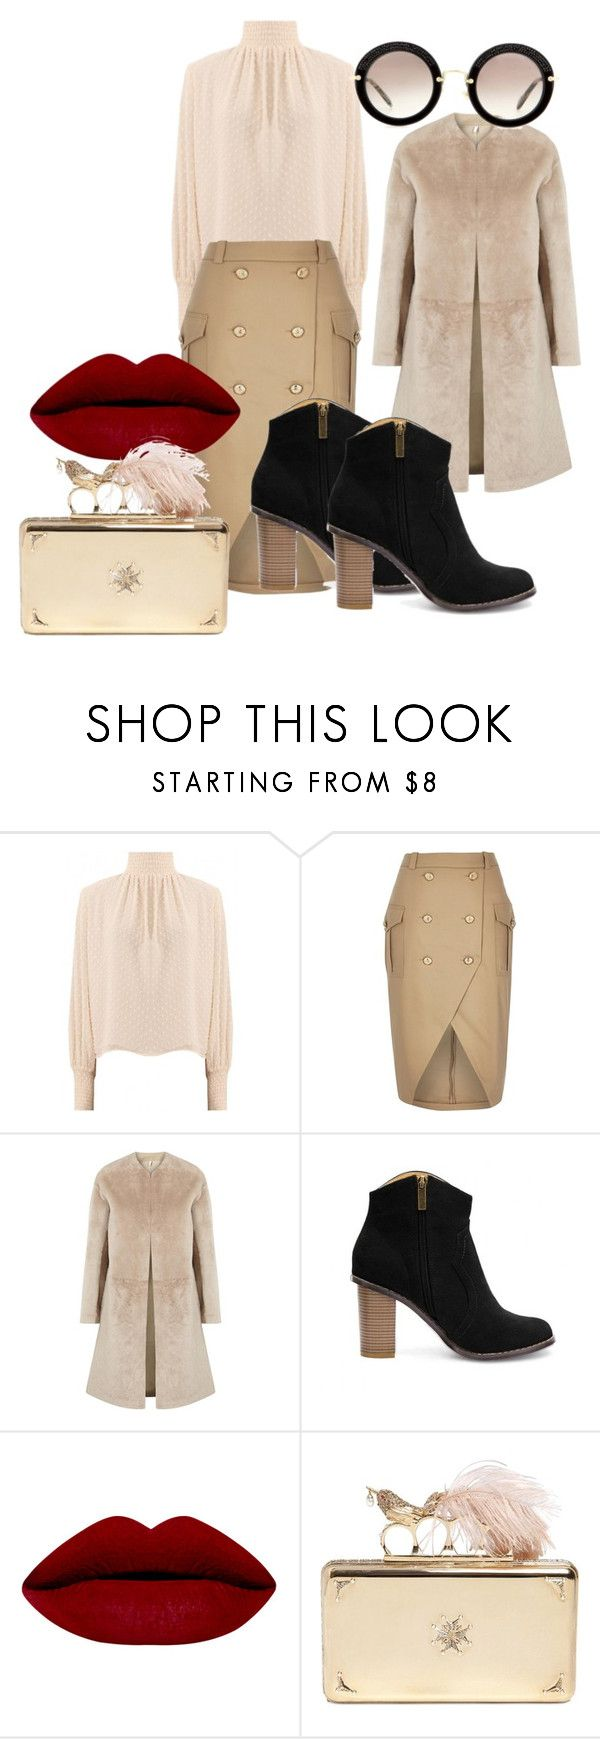 """Nude"" by dzenita-219 on Polyvore featuring River Island, Helmut Lang, Alexander McQueen, Miu Miu, women's clothing, women's fashion, women, female, woman and misses"